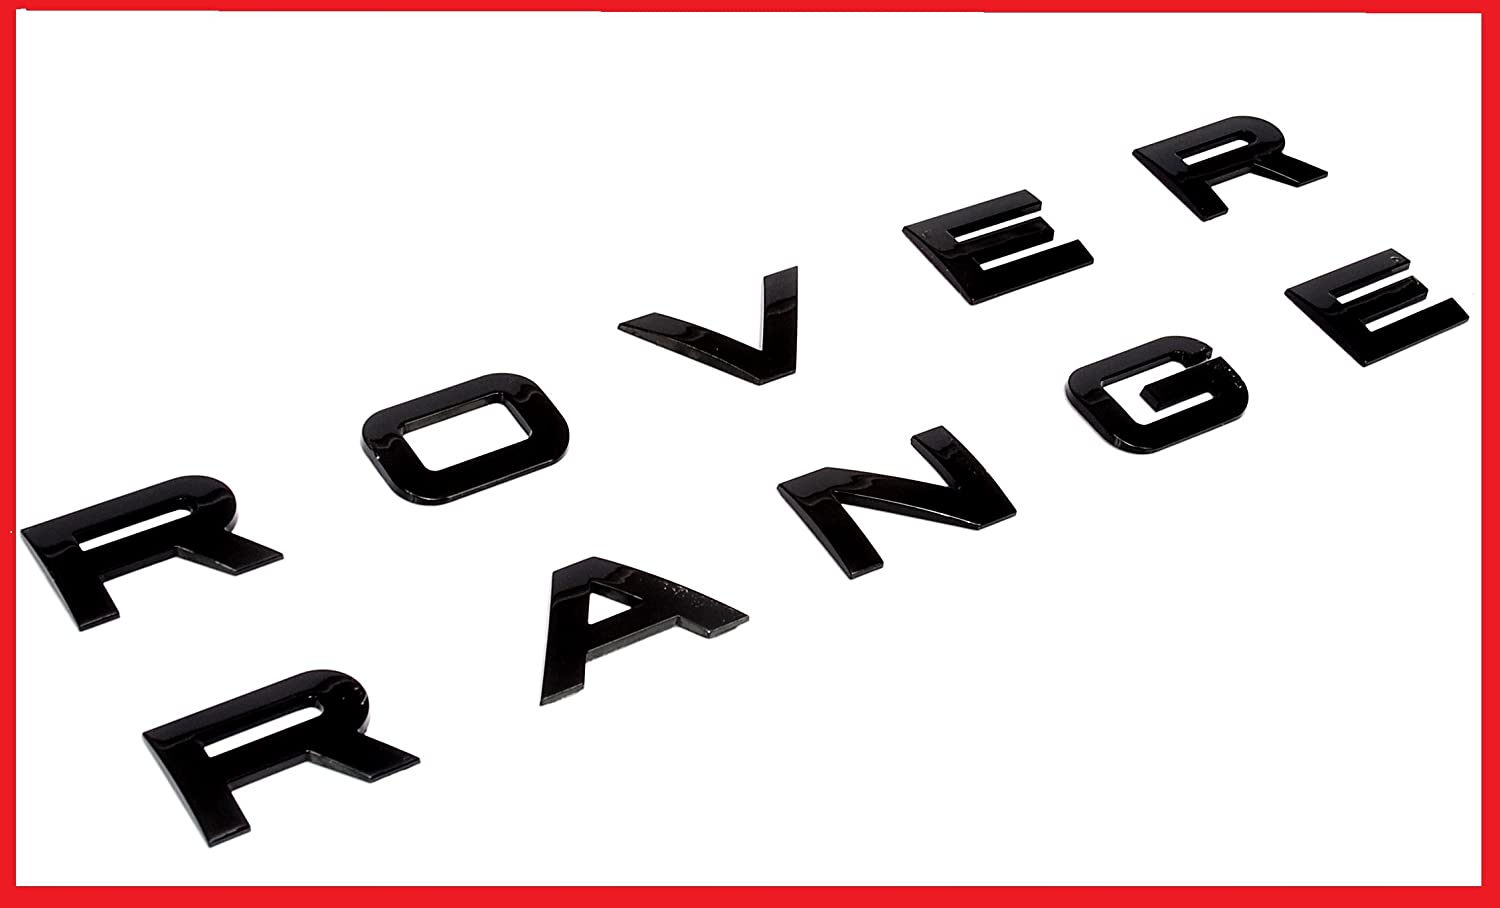 amazon com new set range rover glossy black land rover range emblem rh amazon com range rover logo hat range rover logo hat